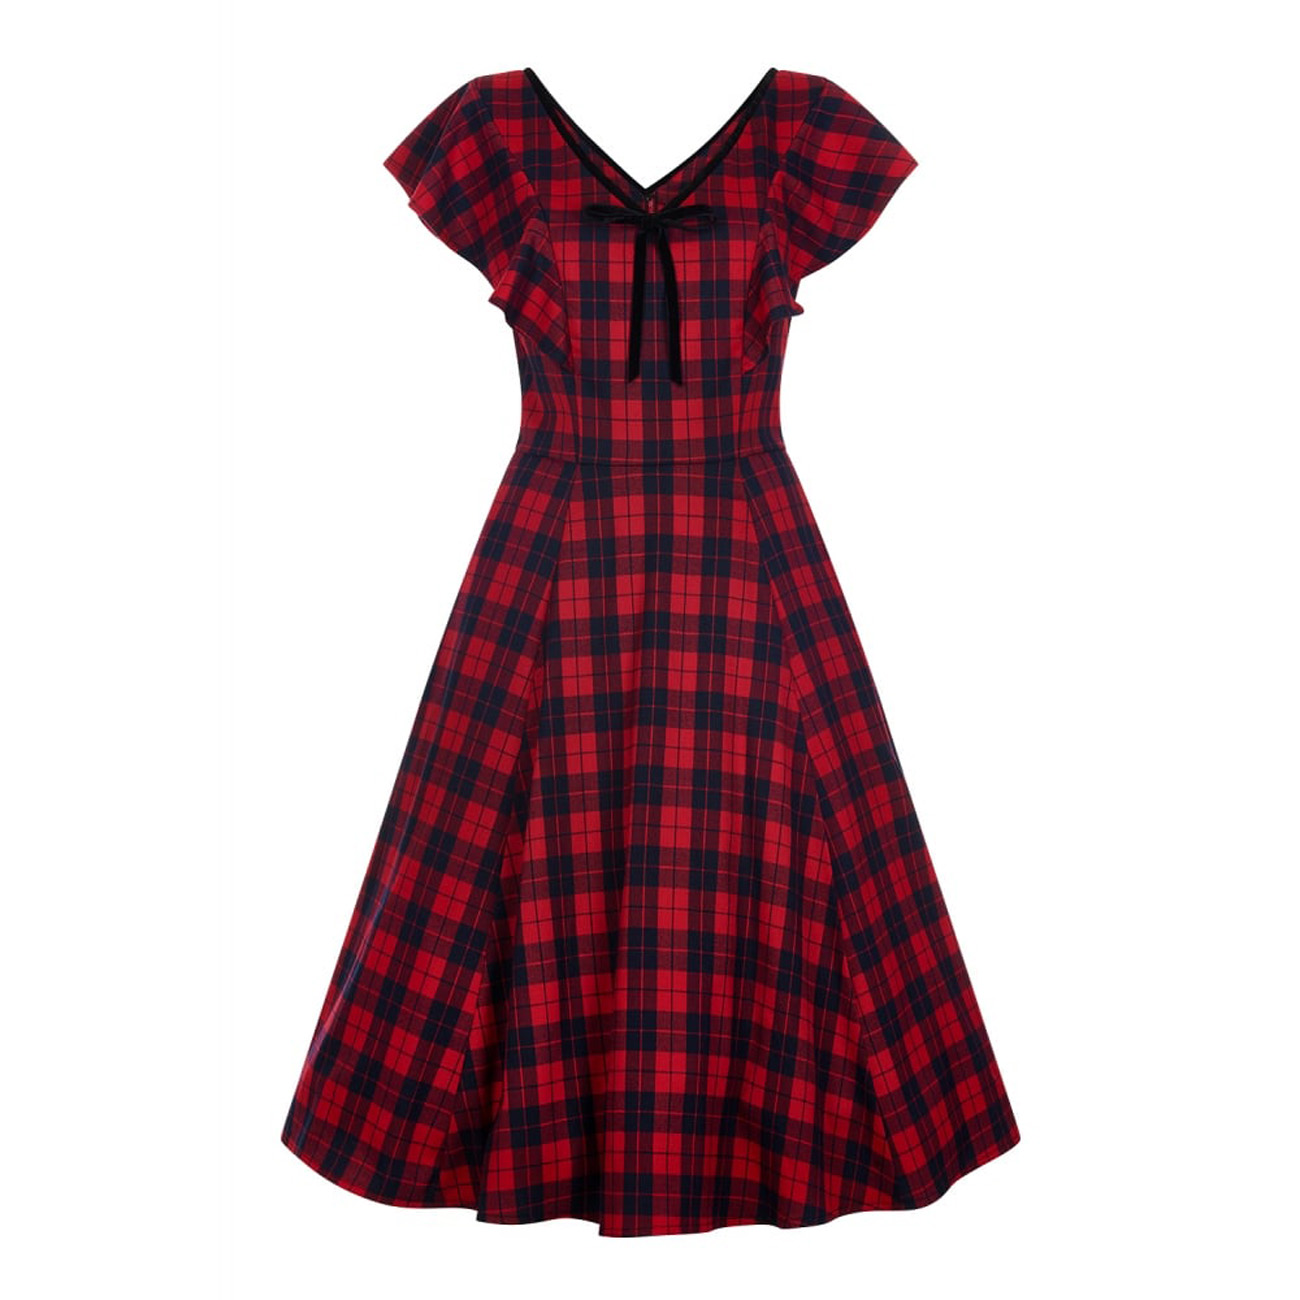 Collectif Vintage Red /& Navy Arabella Ettrick Check Swing Dress Sz 8-22 1950s